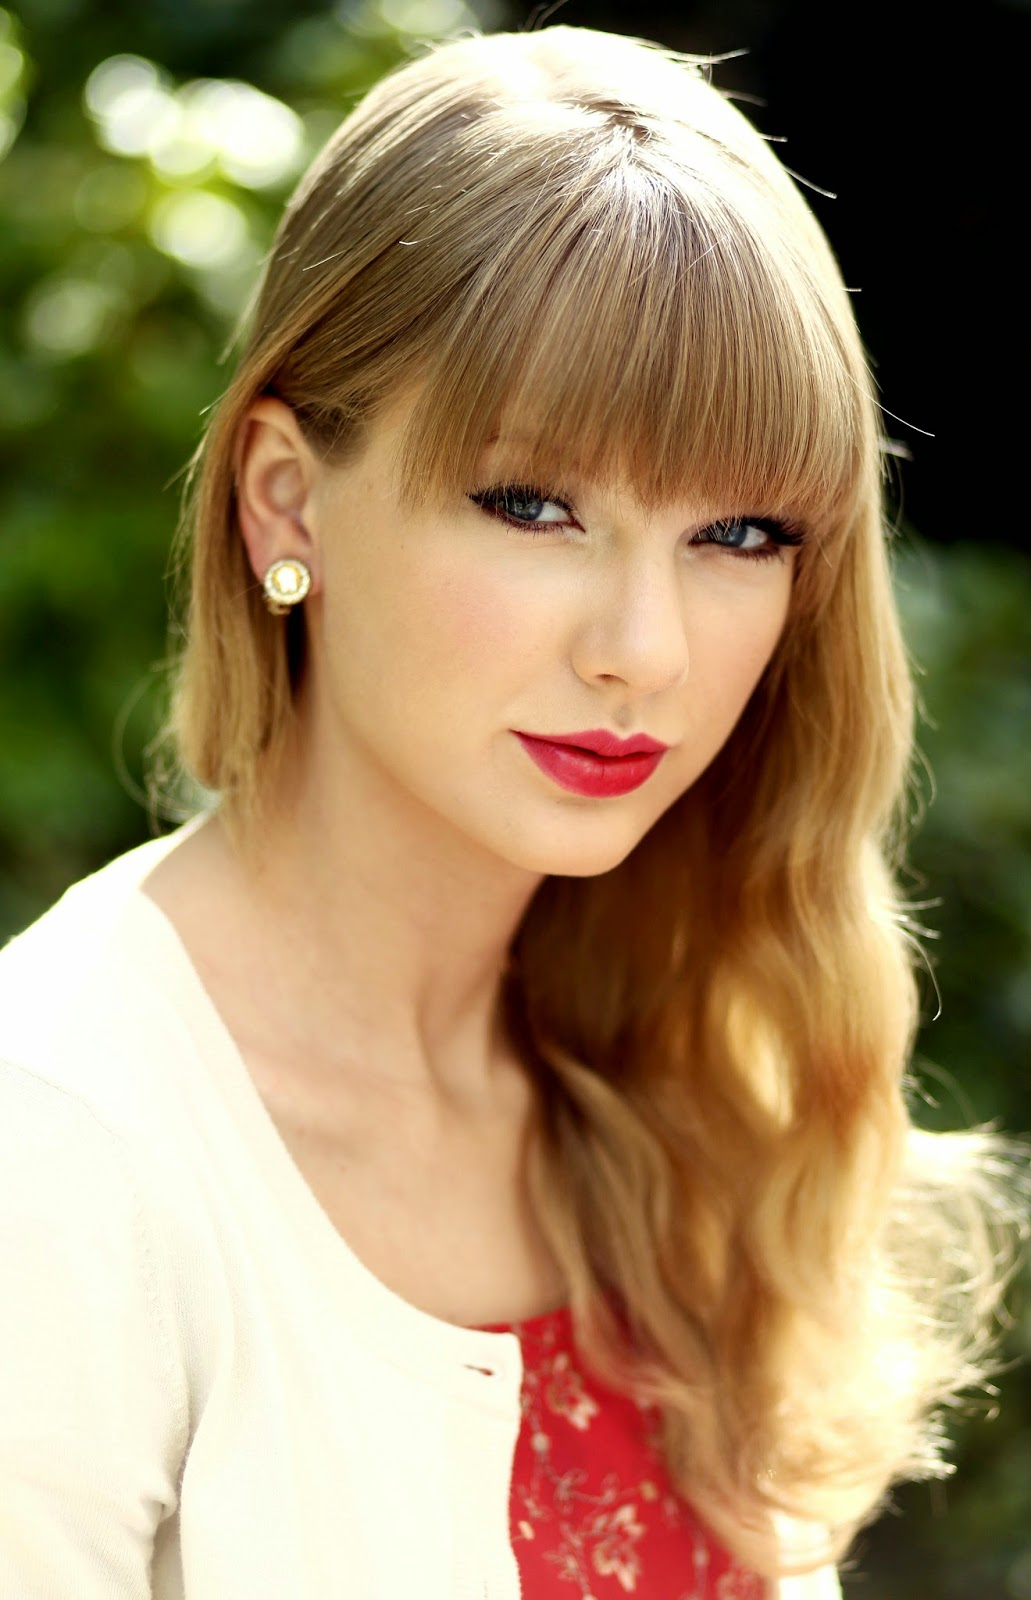 Taylor Swift Biography and Pictures Gallery 2017 - Oddetorium